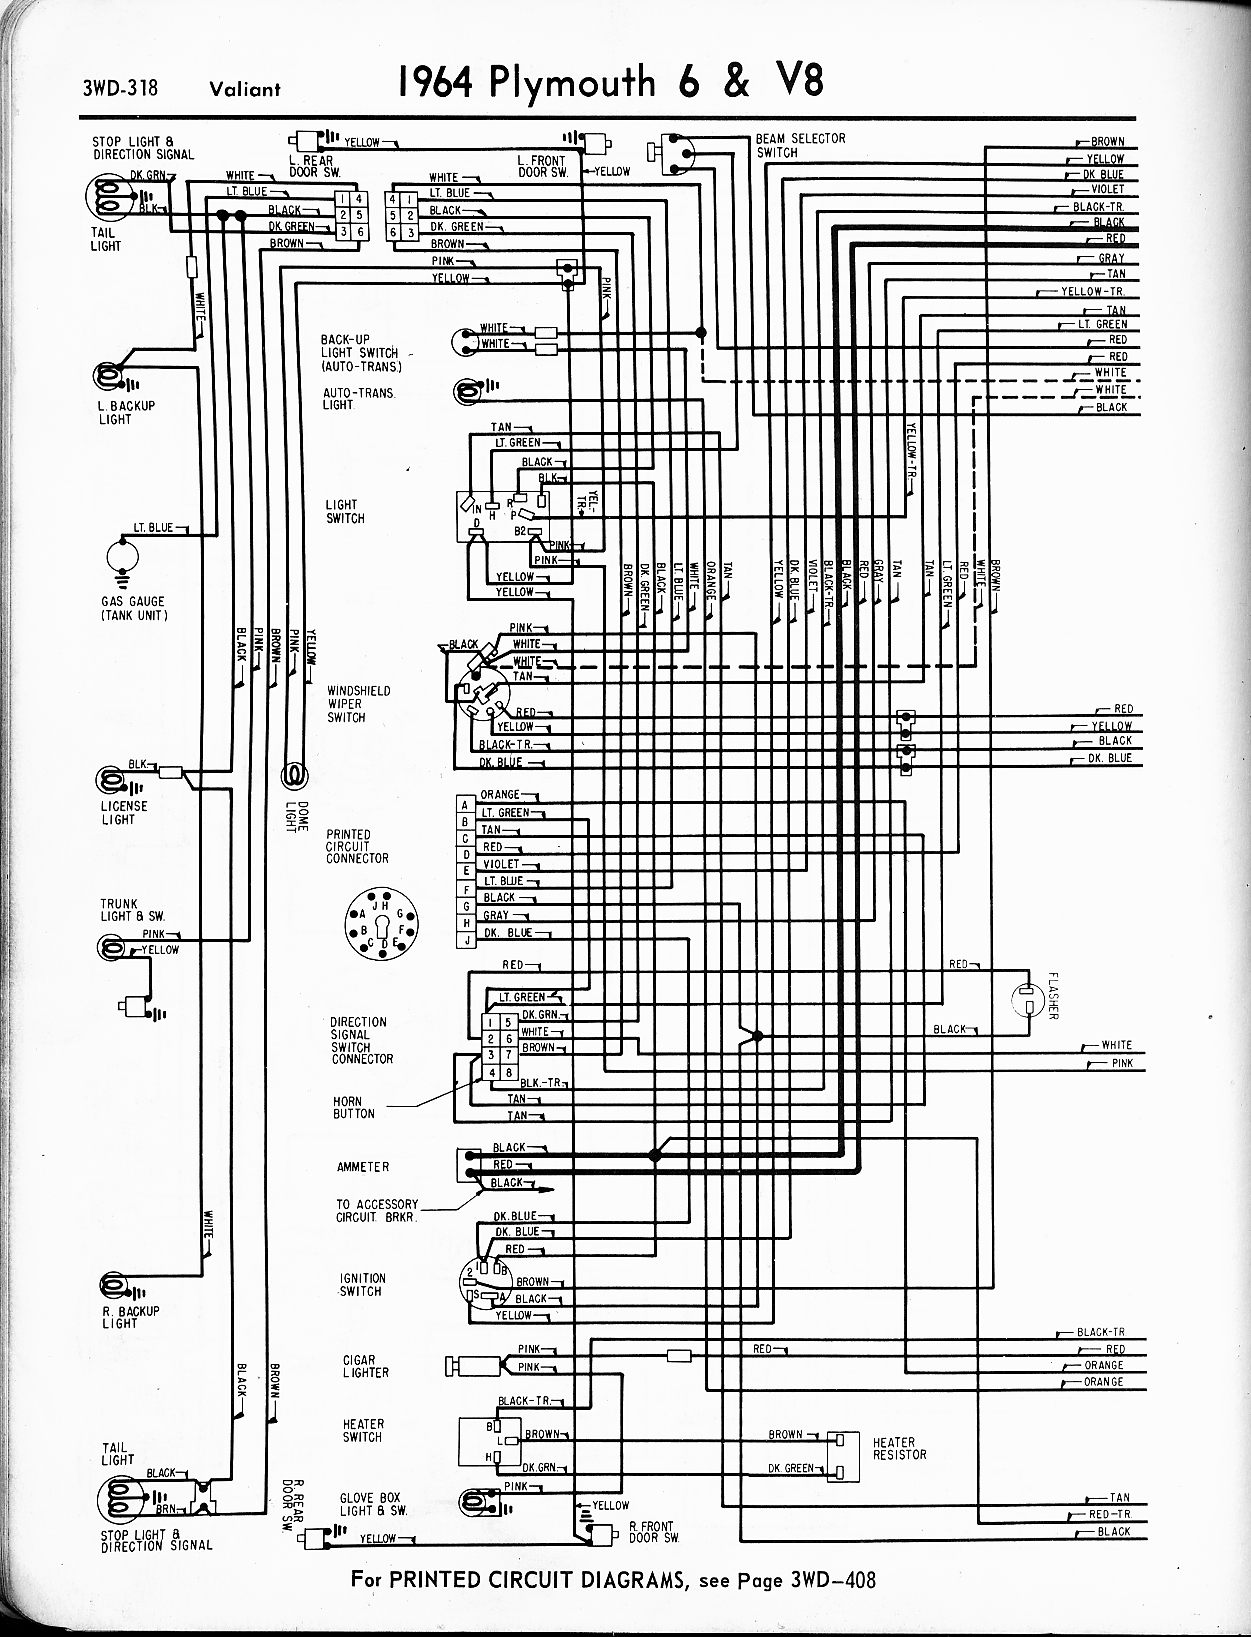 1941 plymouth wiring diagrams 1991 plymouth voyager wiring diagrams